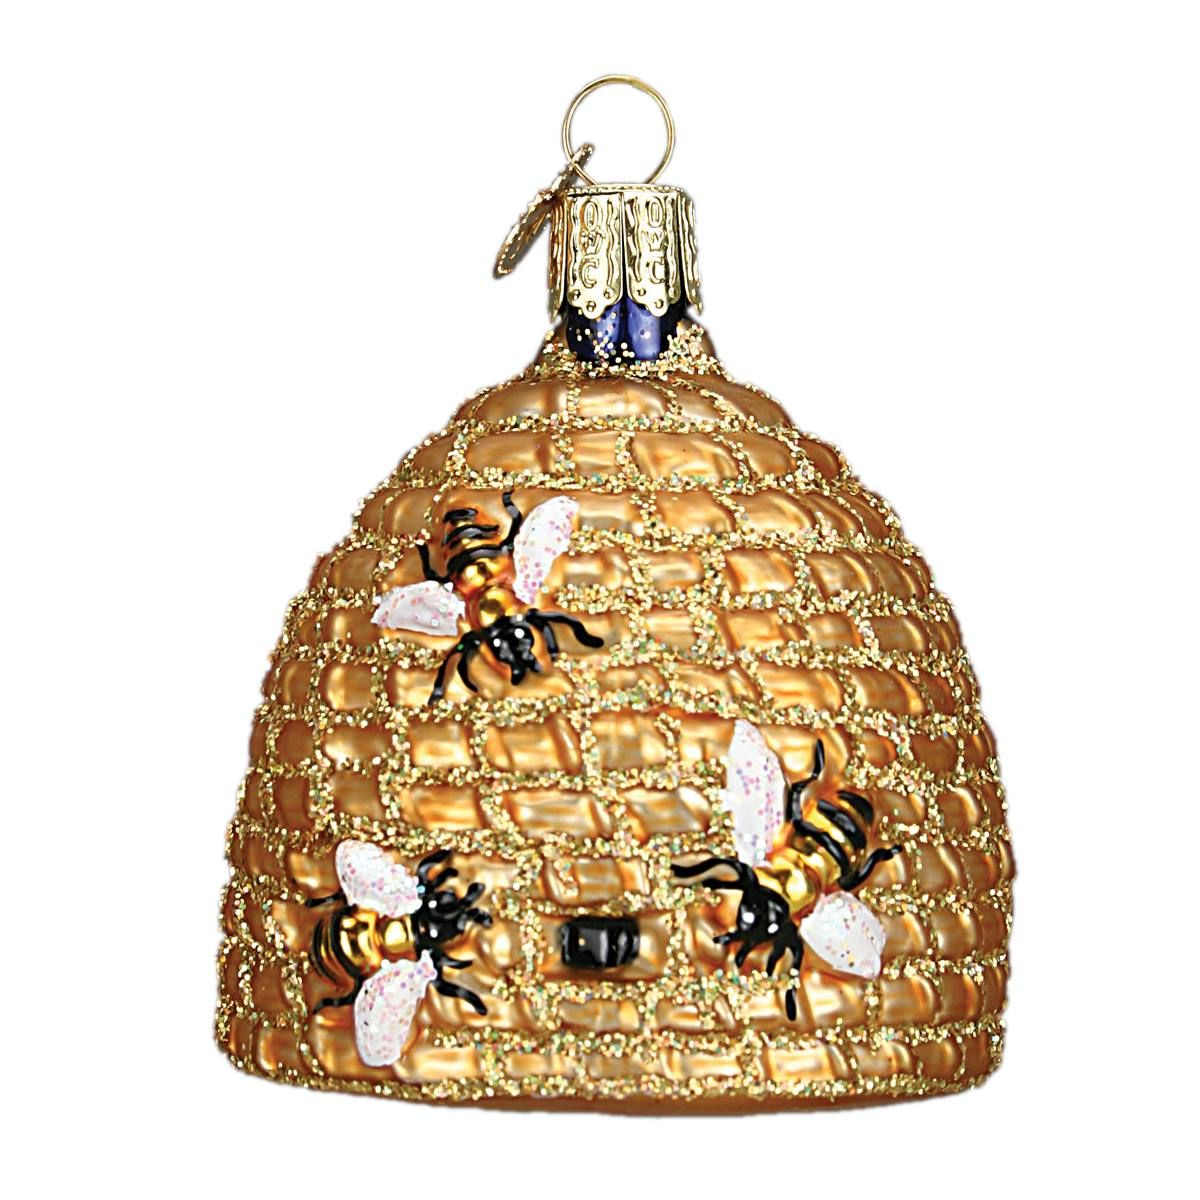 Bee Skep Ornament Old world christmas ornaments, Bee